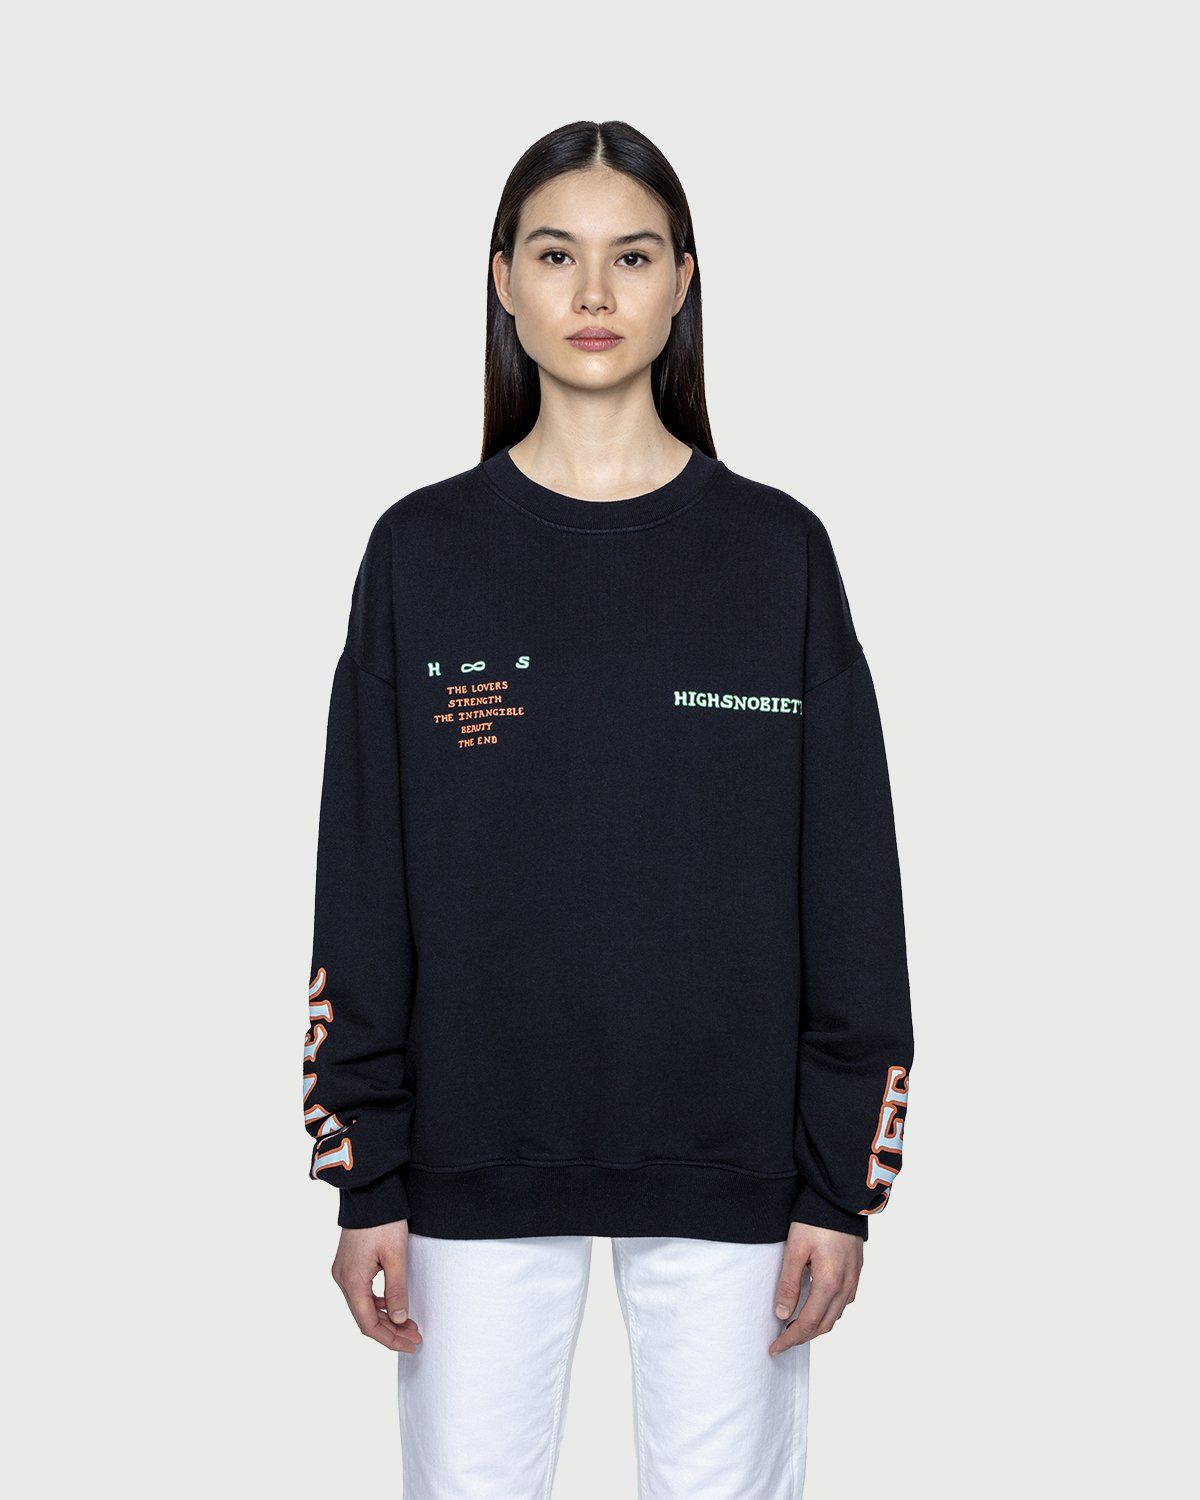 Inner Life by Highsnobiety - The Intangible Sweatshirt Black - Image 3